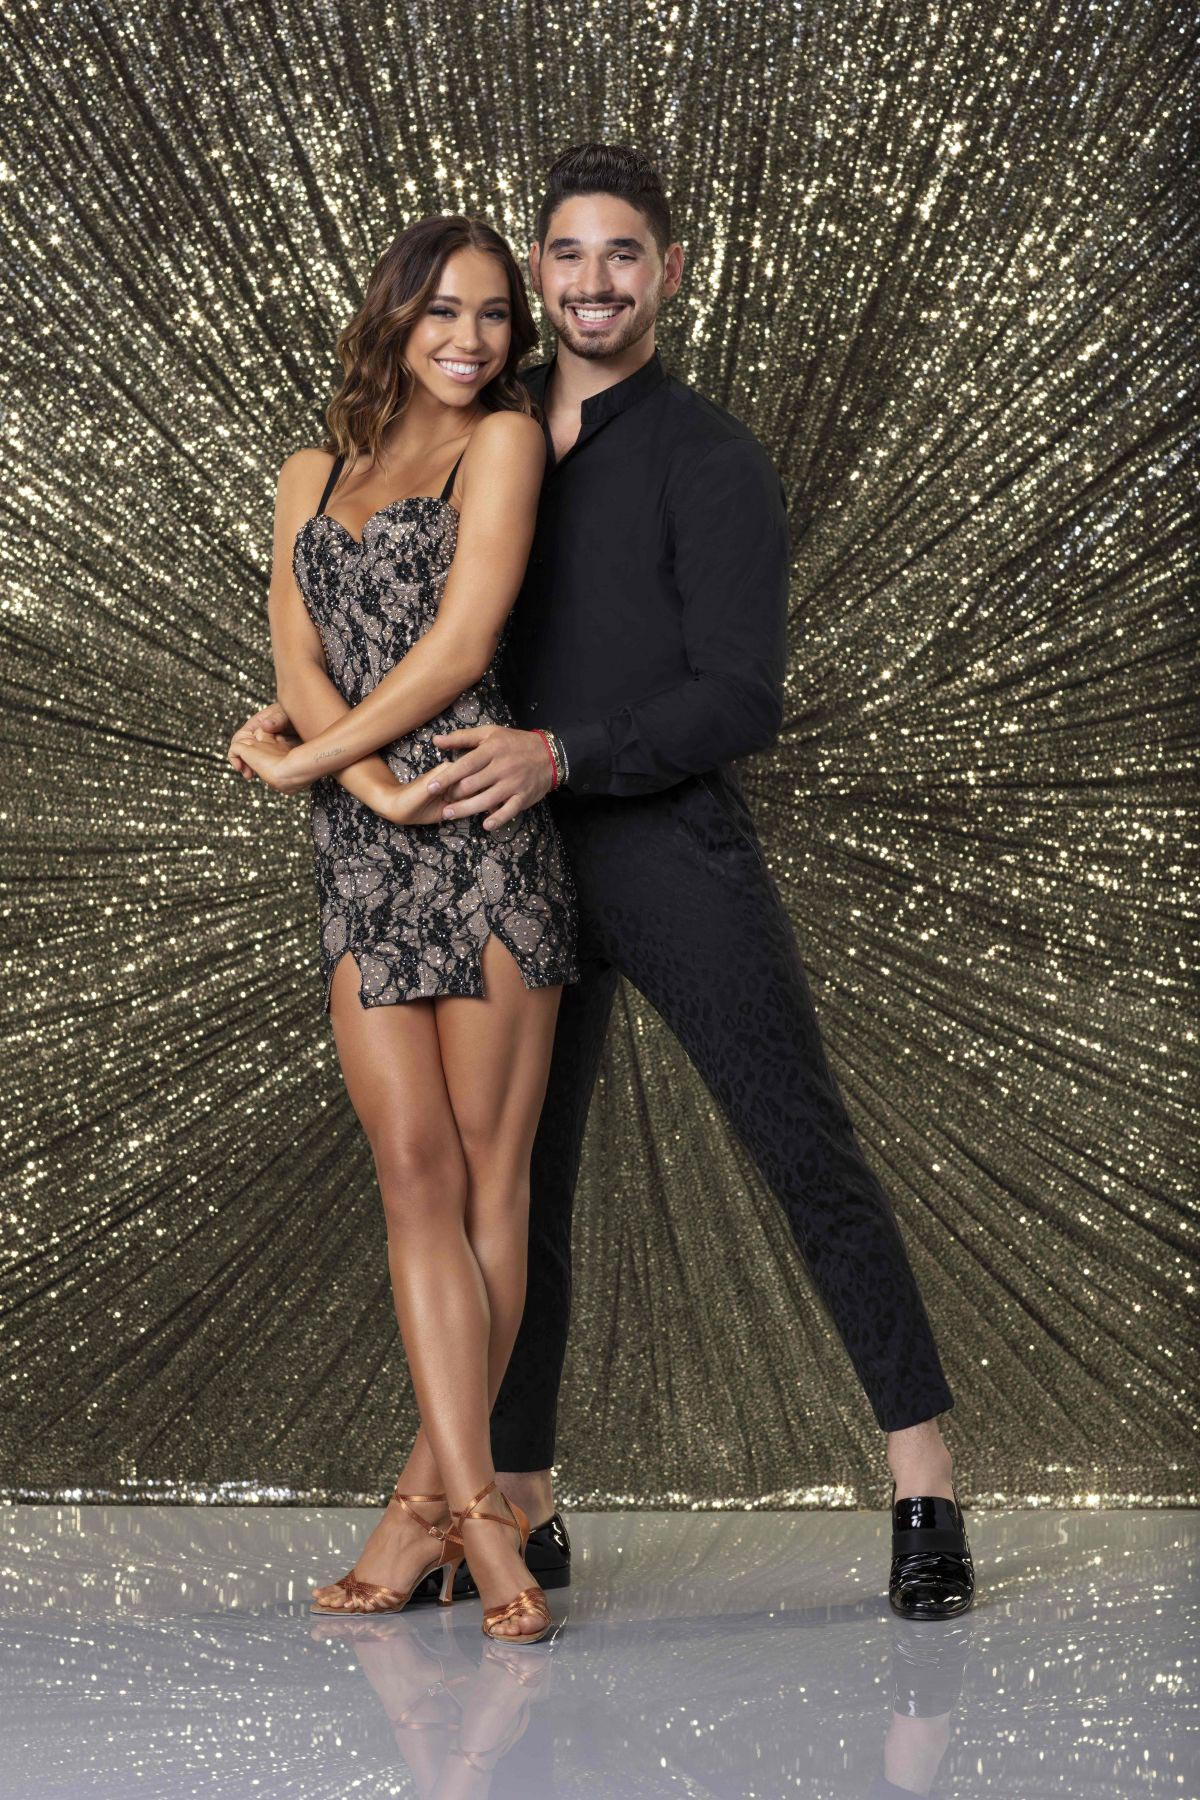 Alexis Ren at Dancing With the Stars, Season 27 Promos 2018/09/16 1